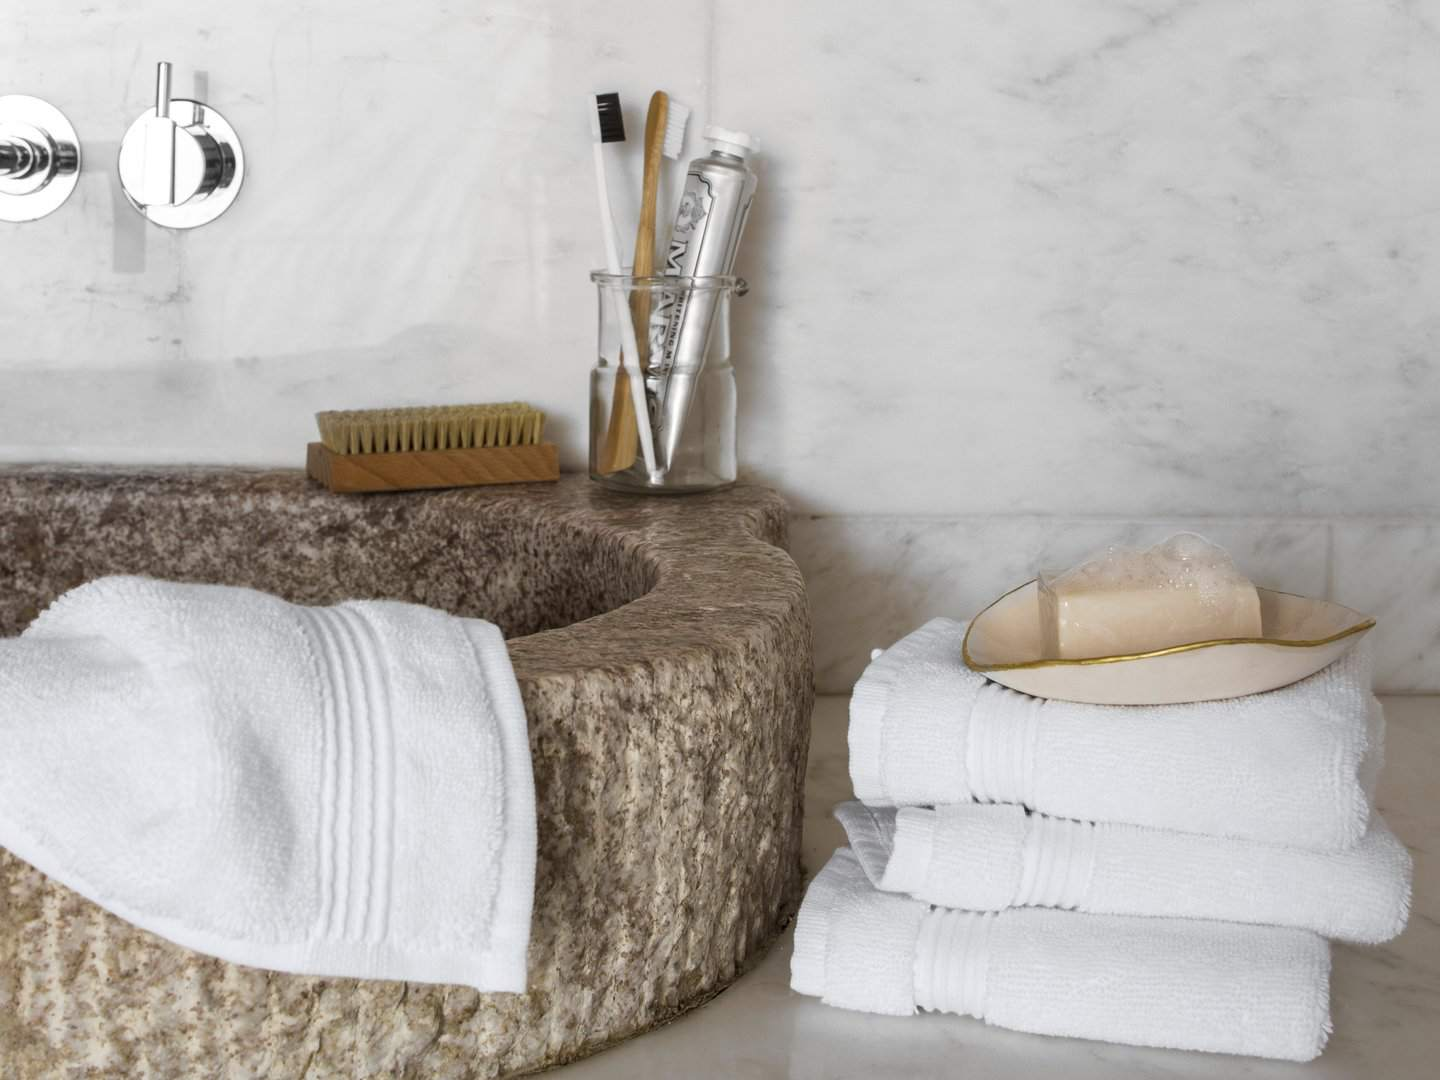 Parachute washcloths and hand towels surrounding a sink with other bathroom accessories